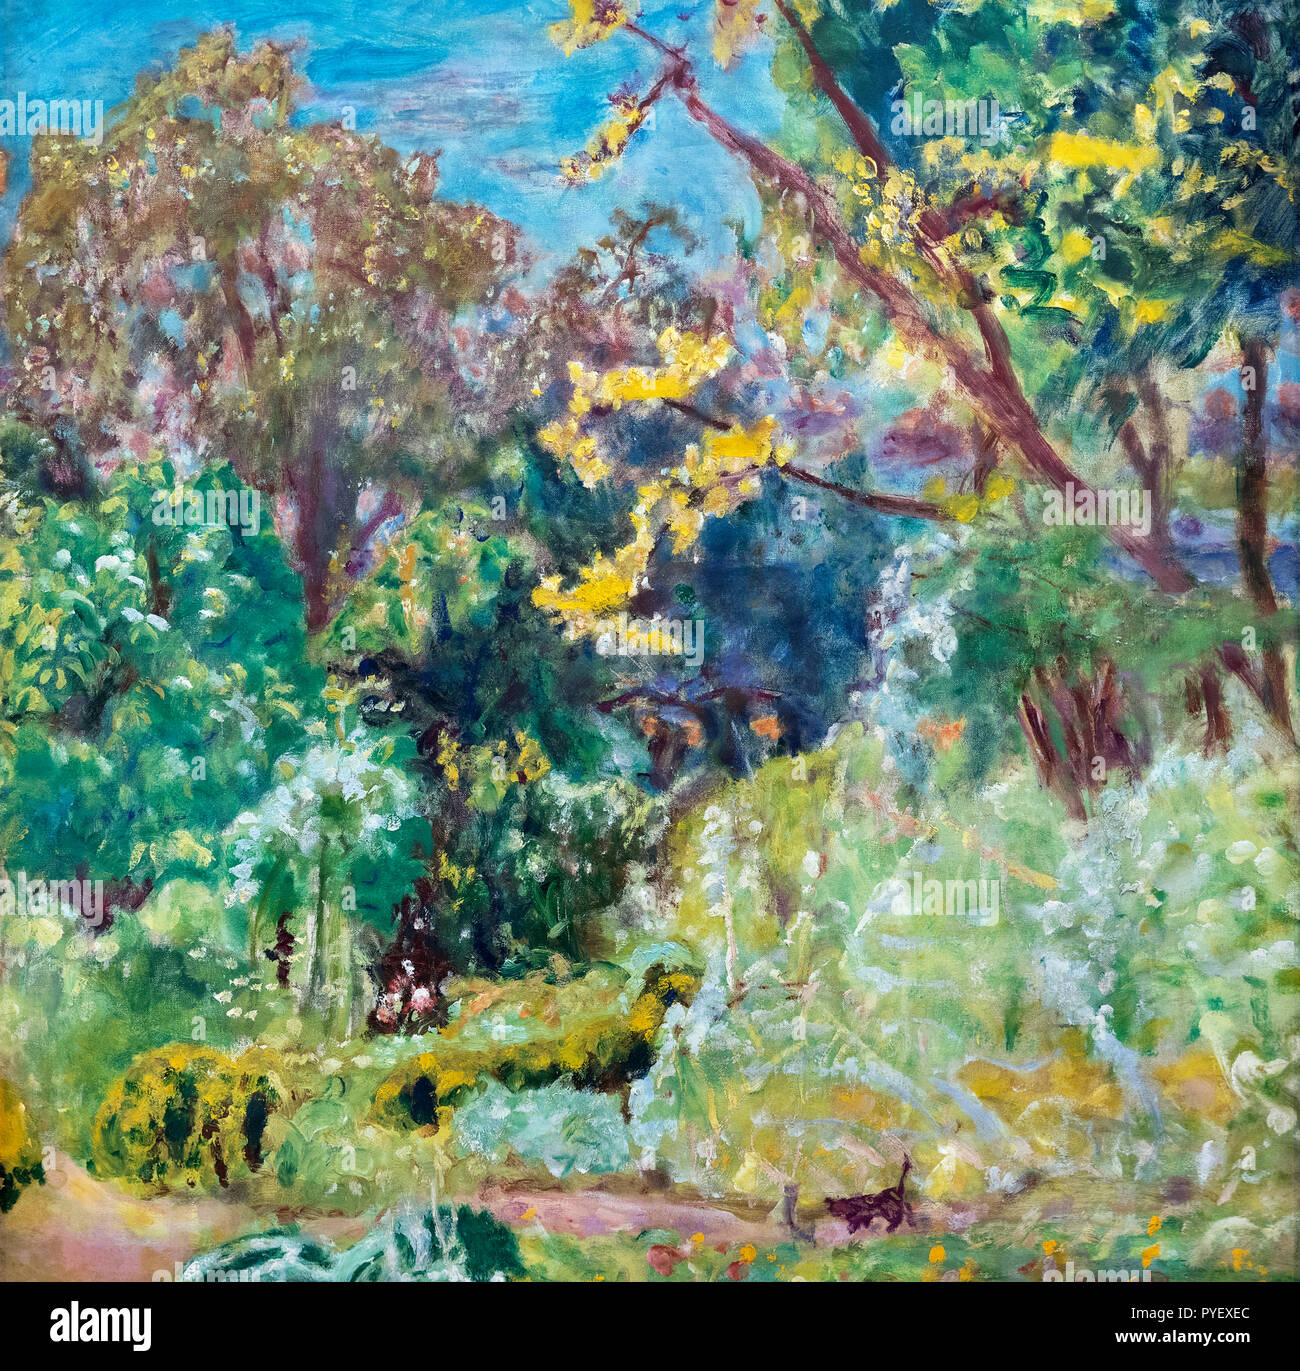 Sunlight by Pierre Bonnard (1867-1947), oil on canvas, 1923 - Stock Image